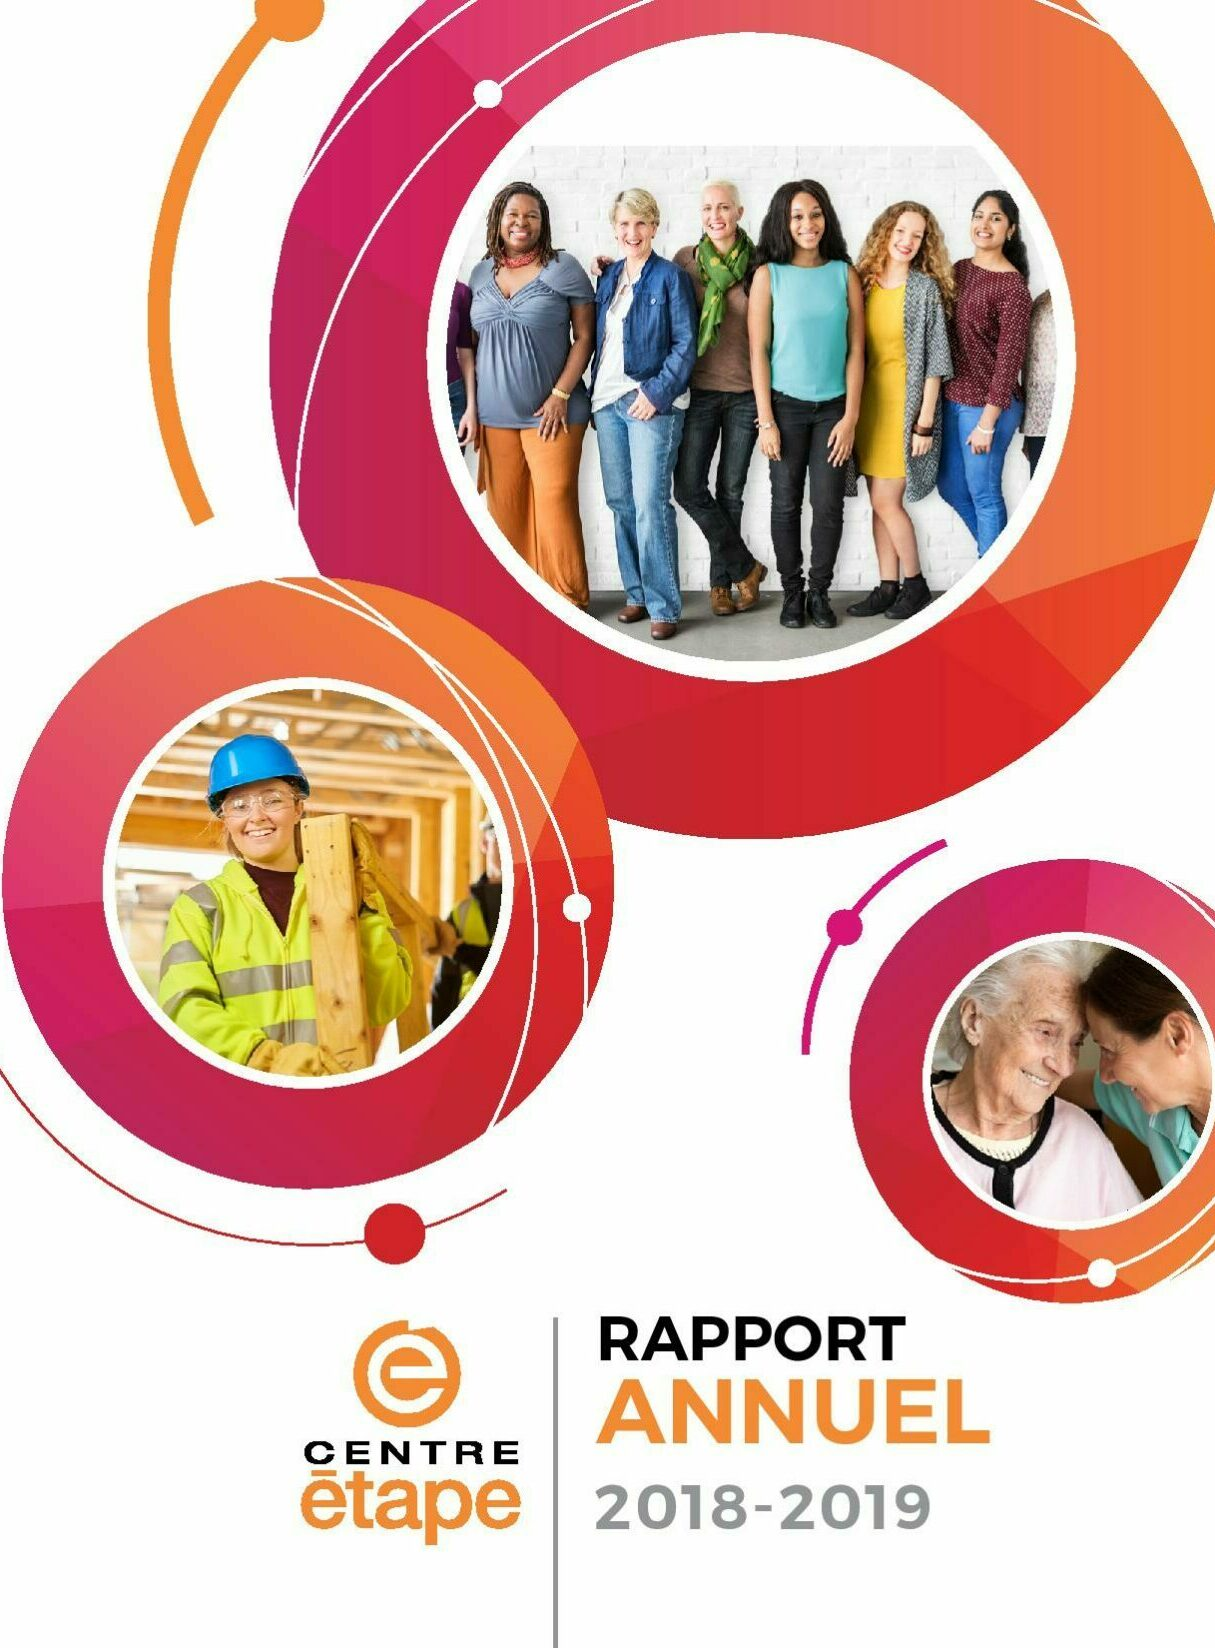 Rapport annuel 2018-2019